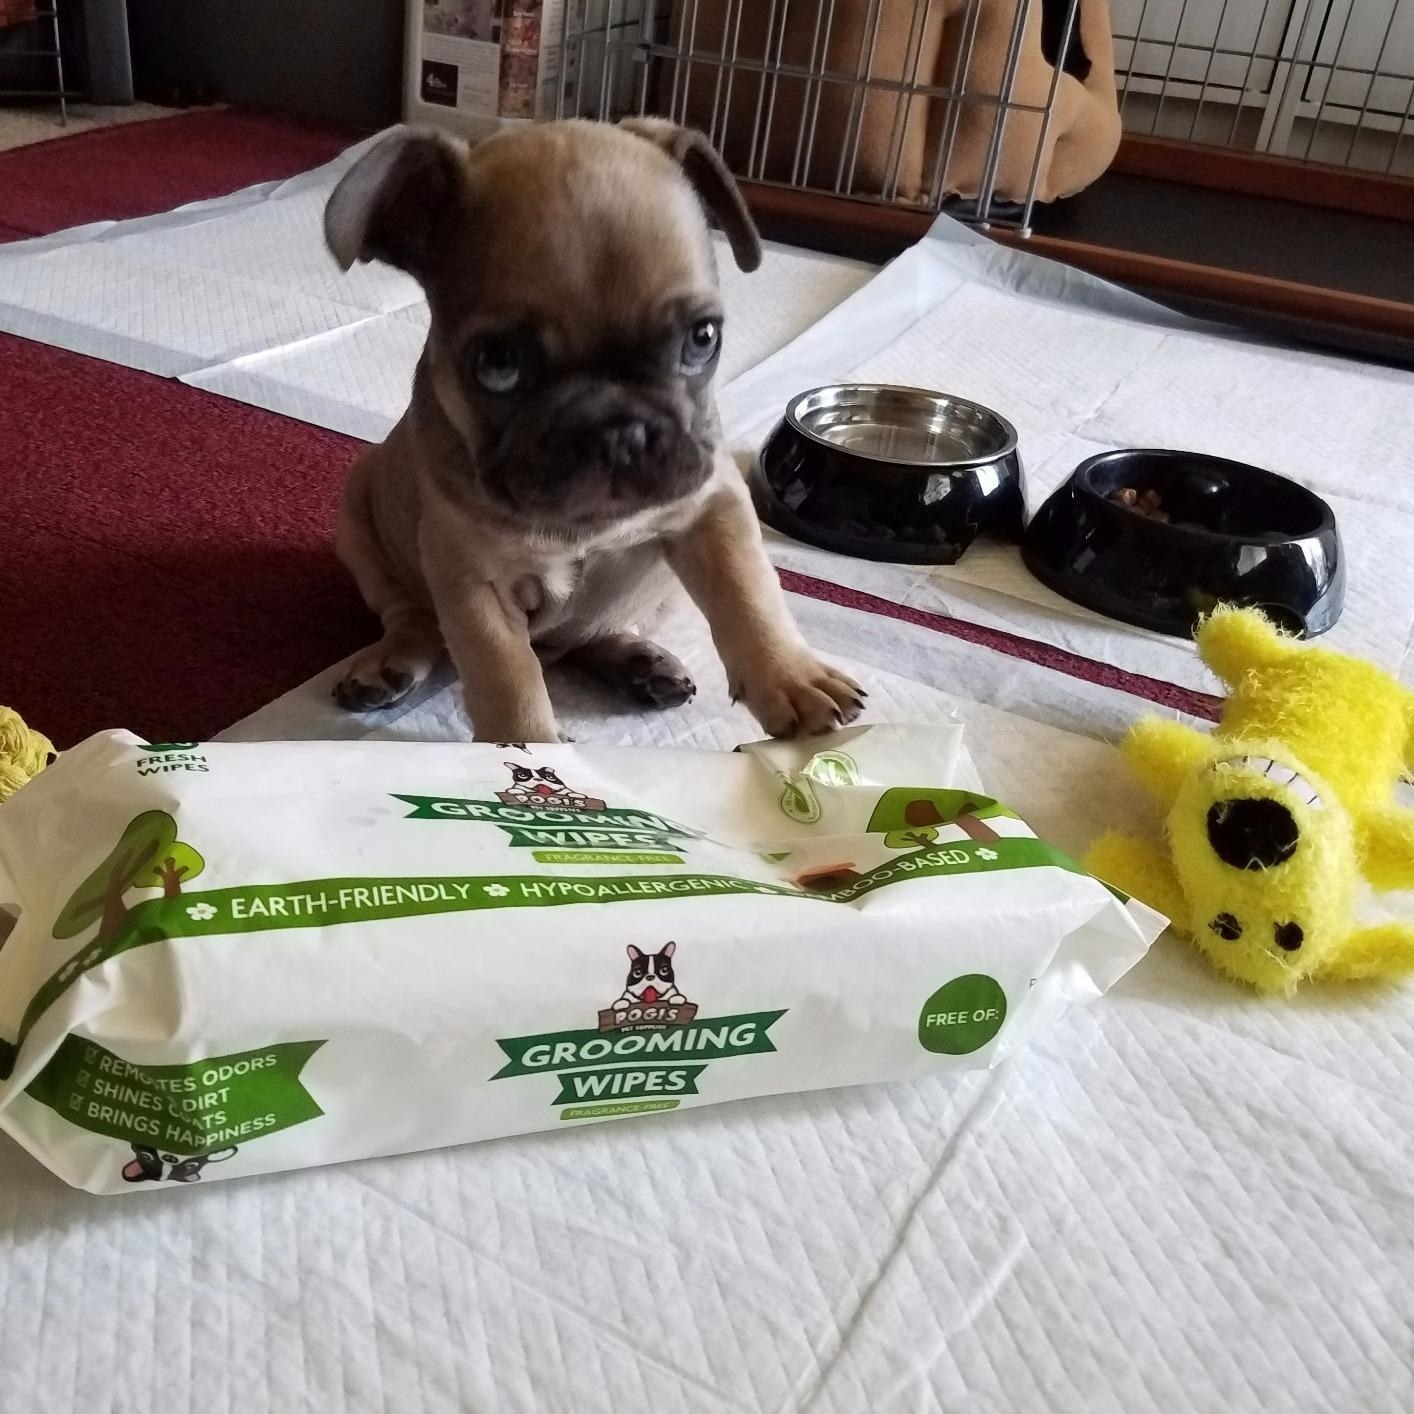 A tiny puppy next to the pack of wipes